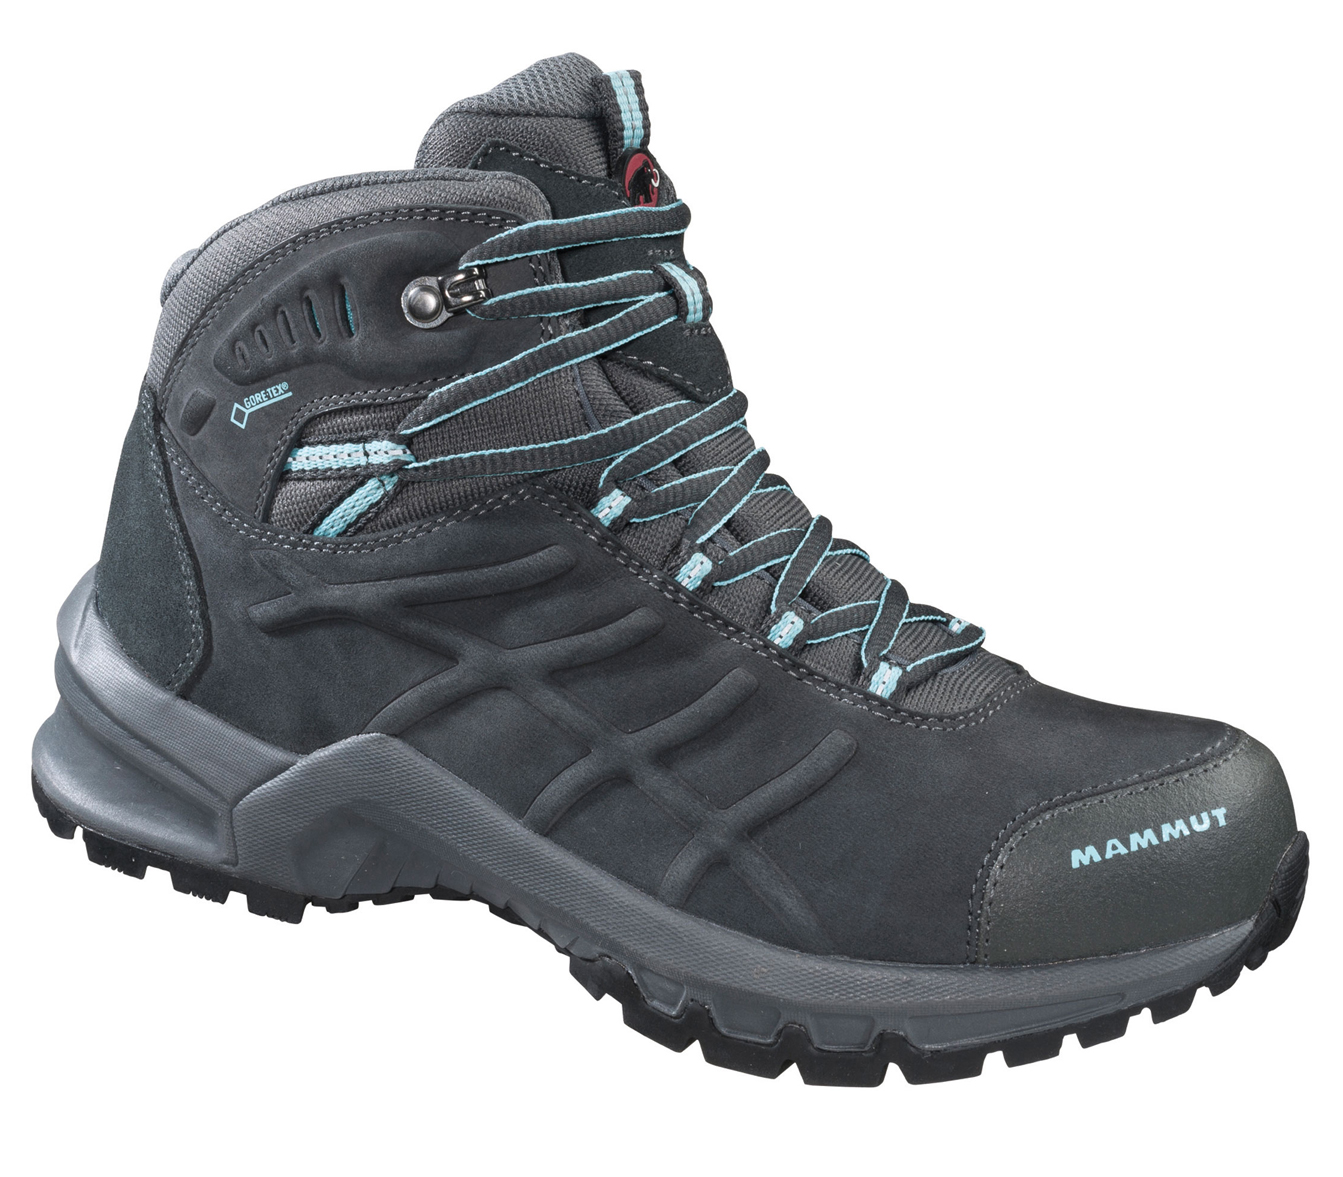 Damen Wanderschuh Nova Mid II GTX Women, graphite-light carribean, 5